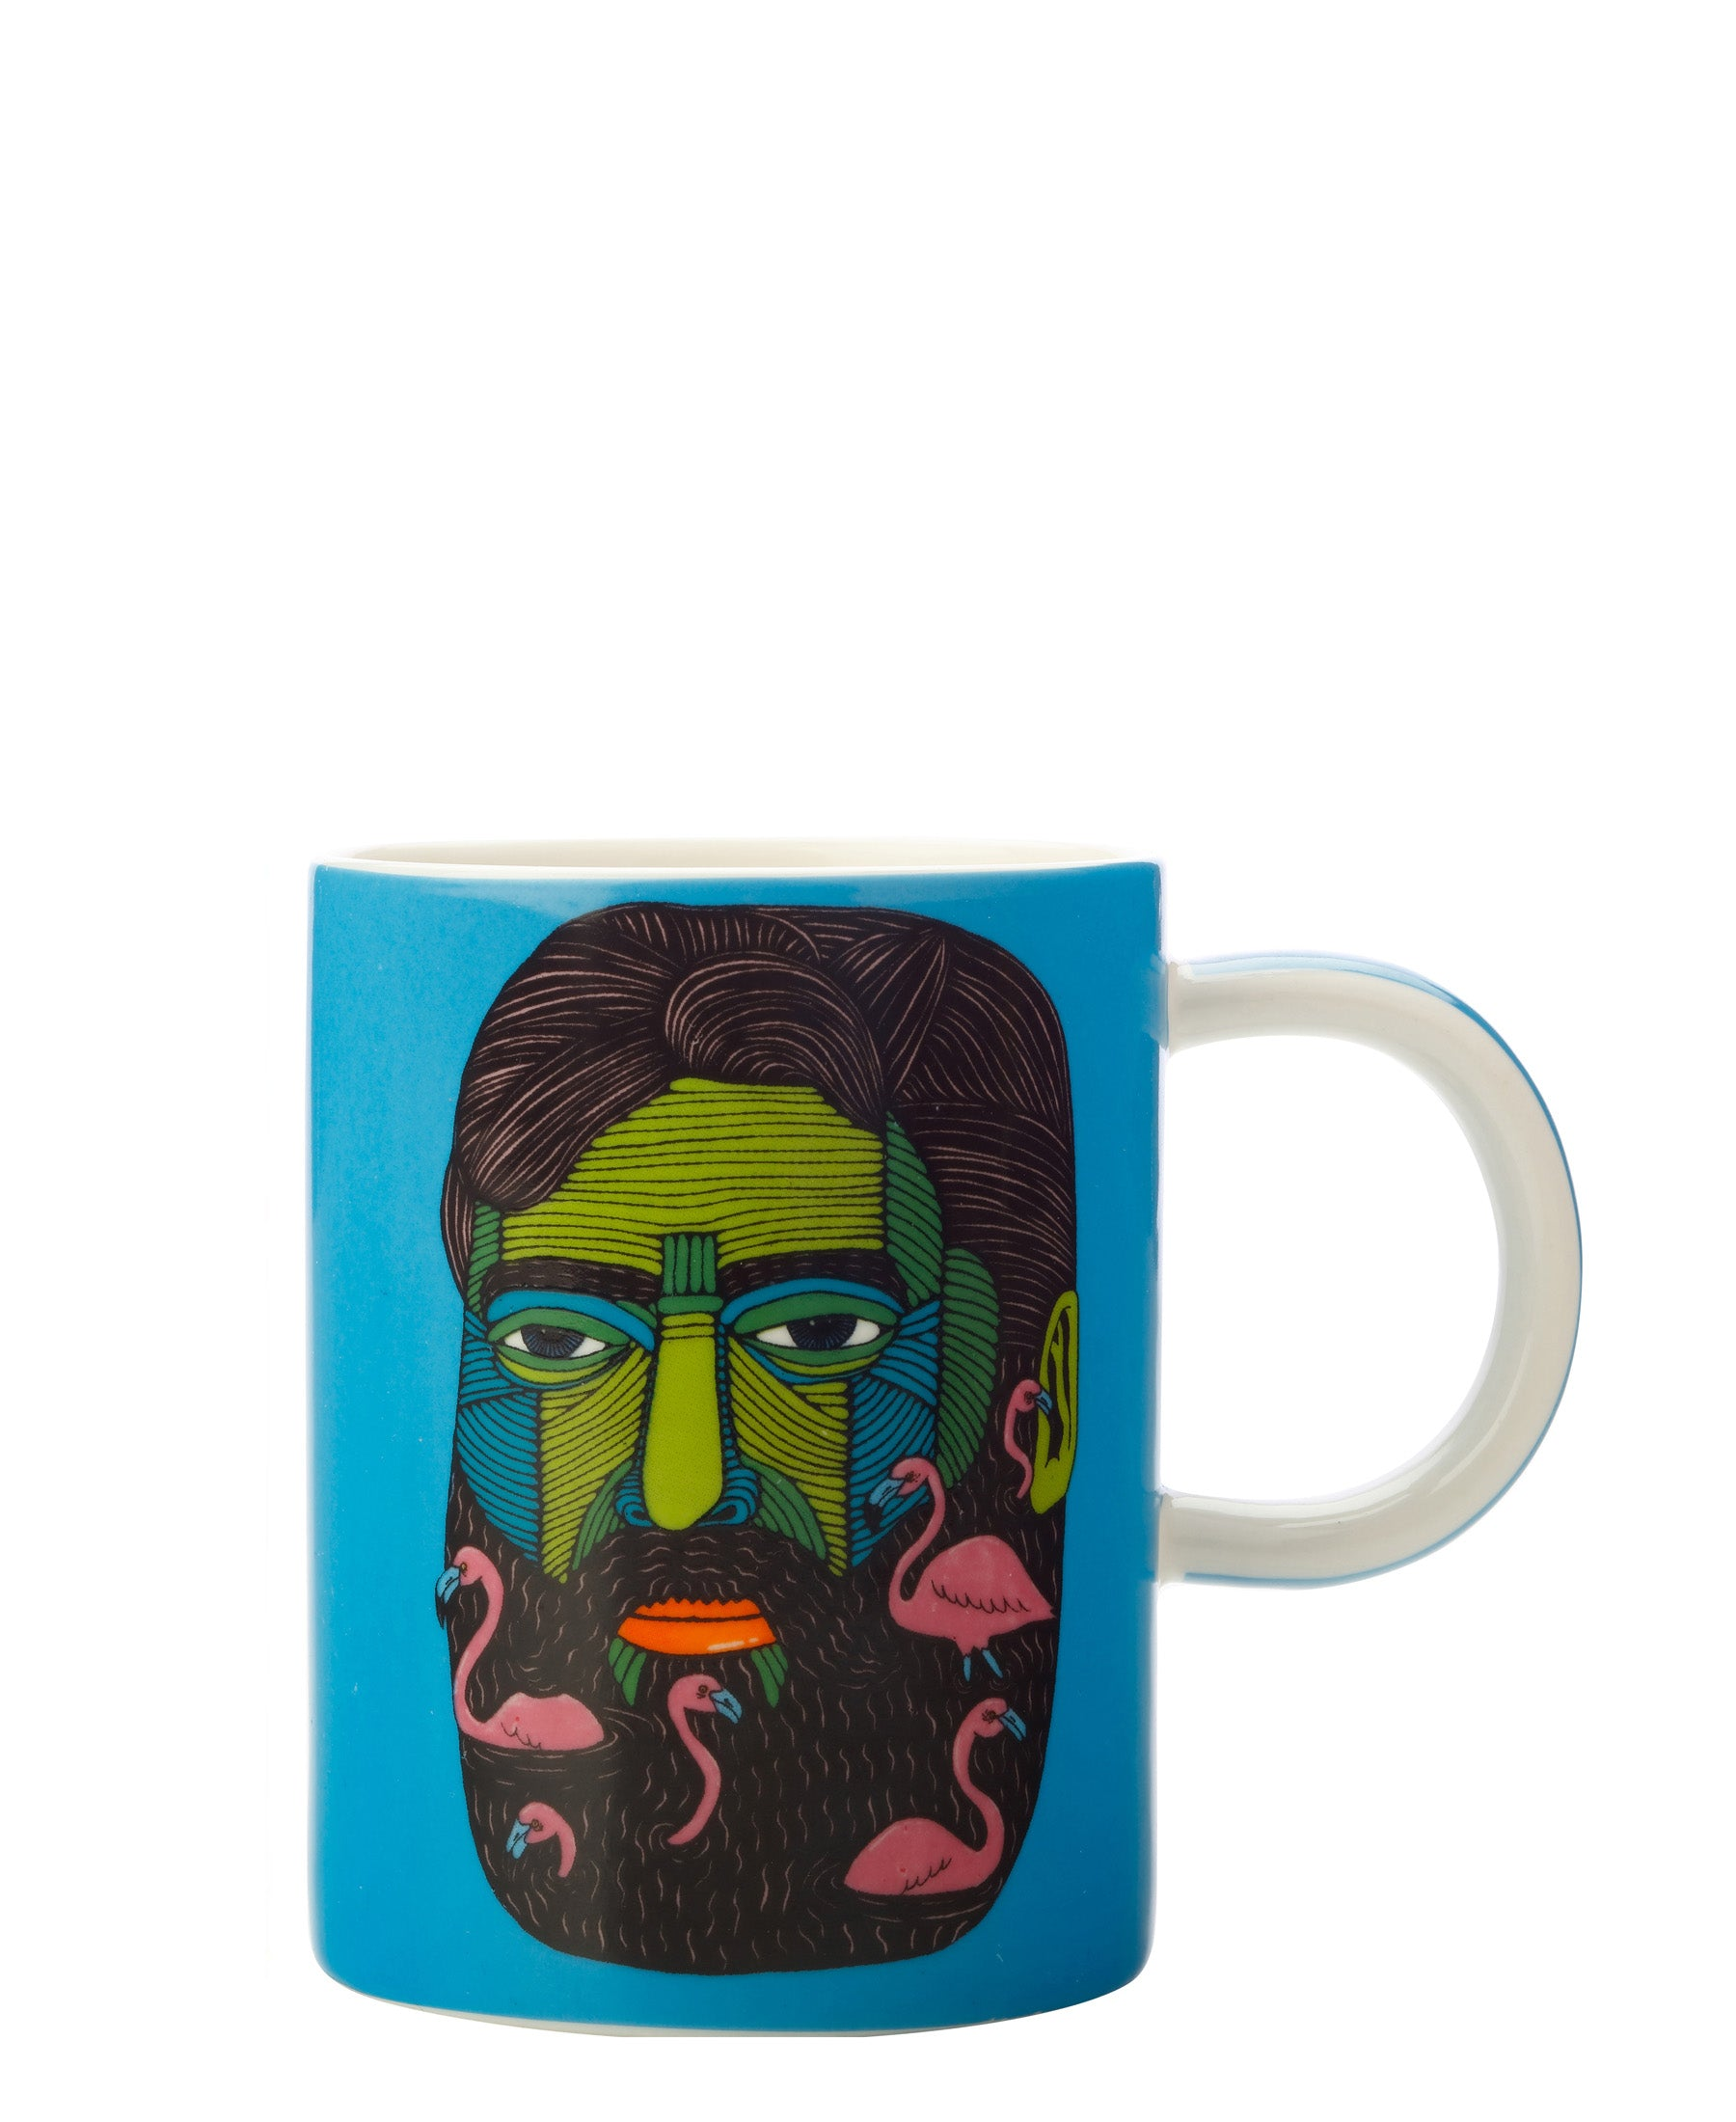 Mulga the Artist Mug 410ML Dolphin man